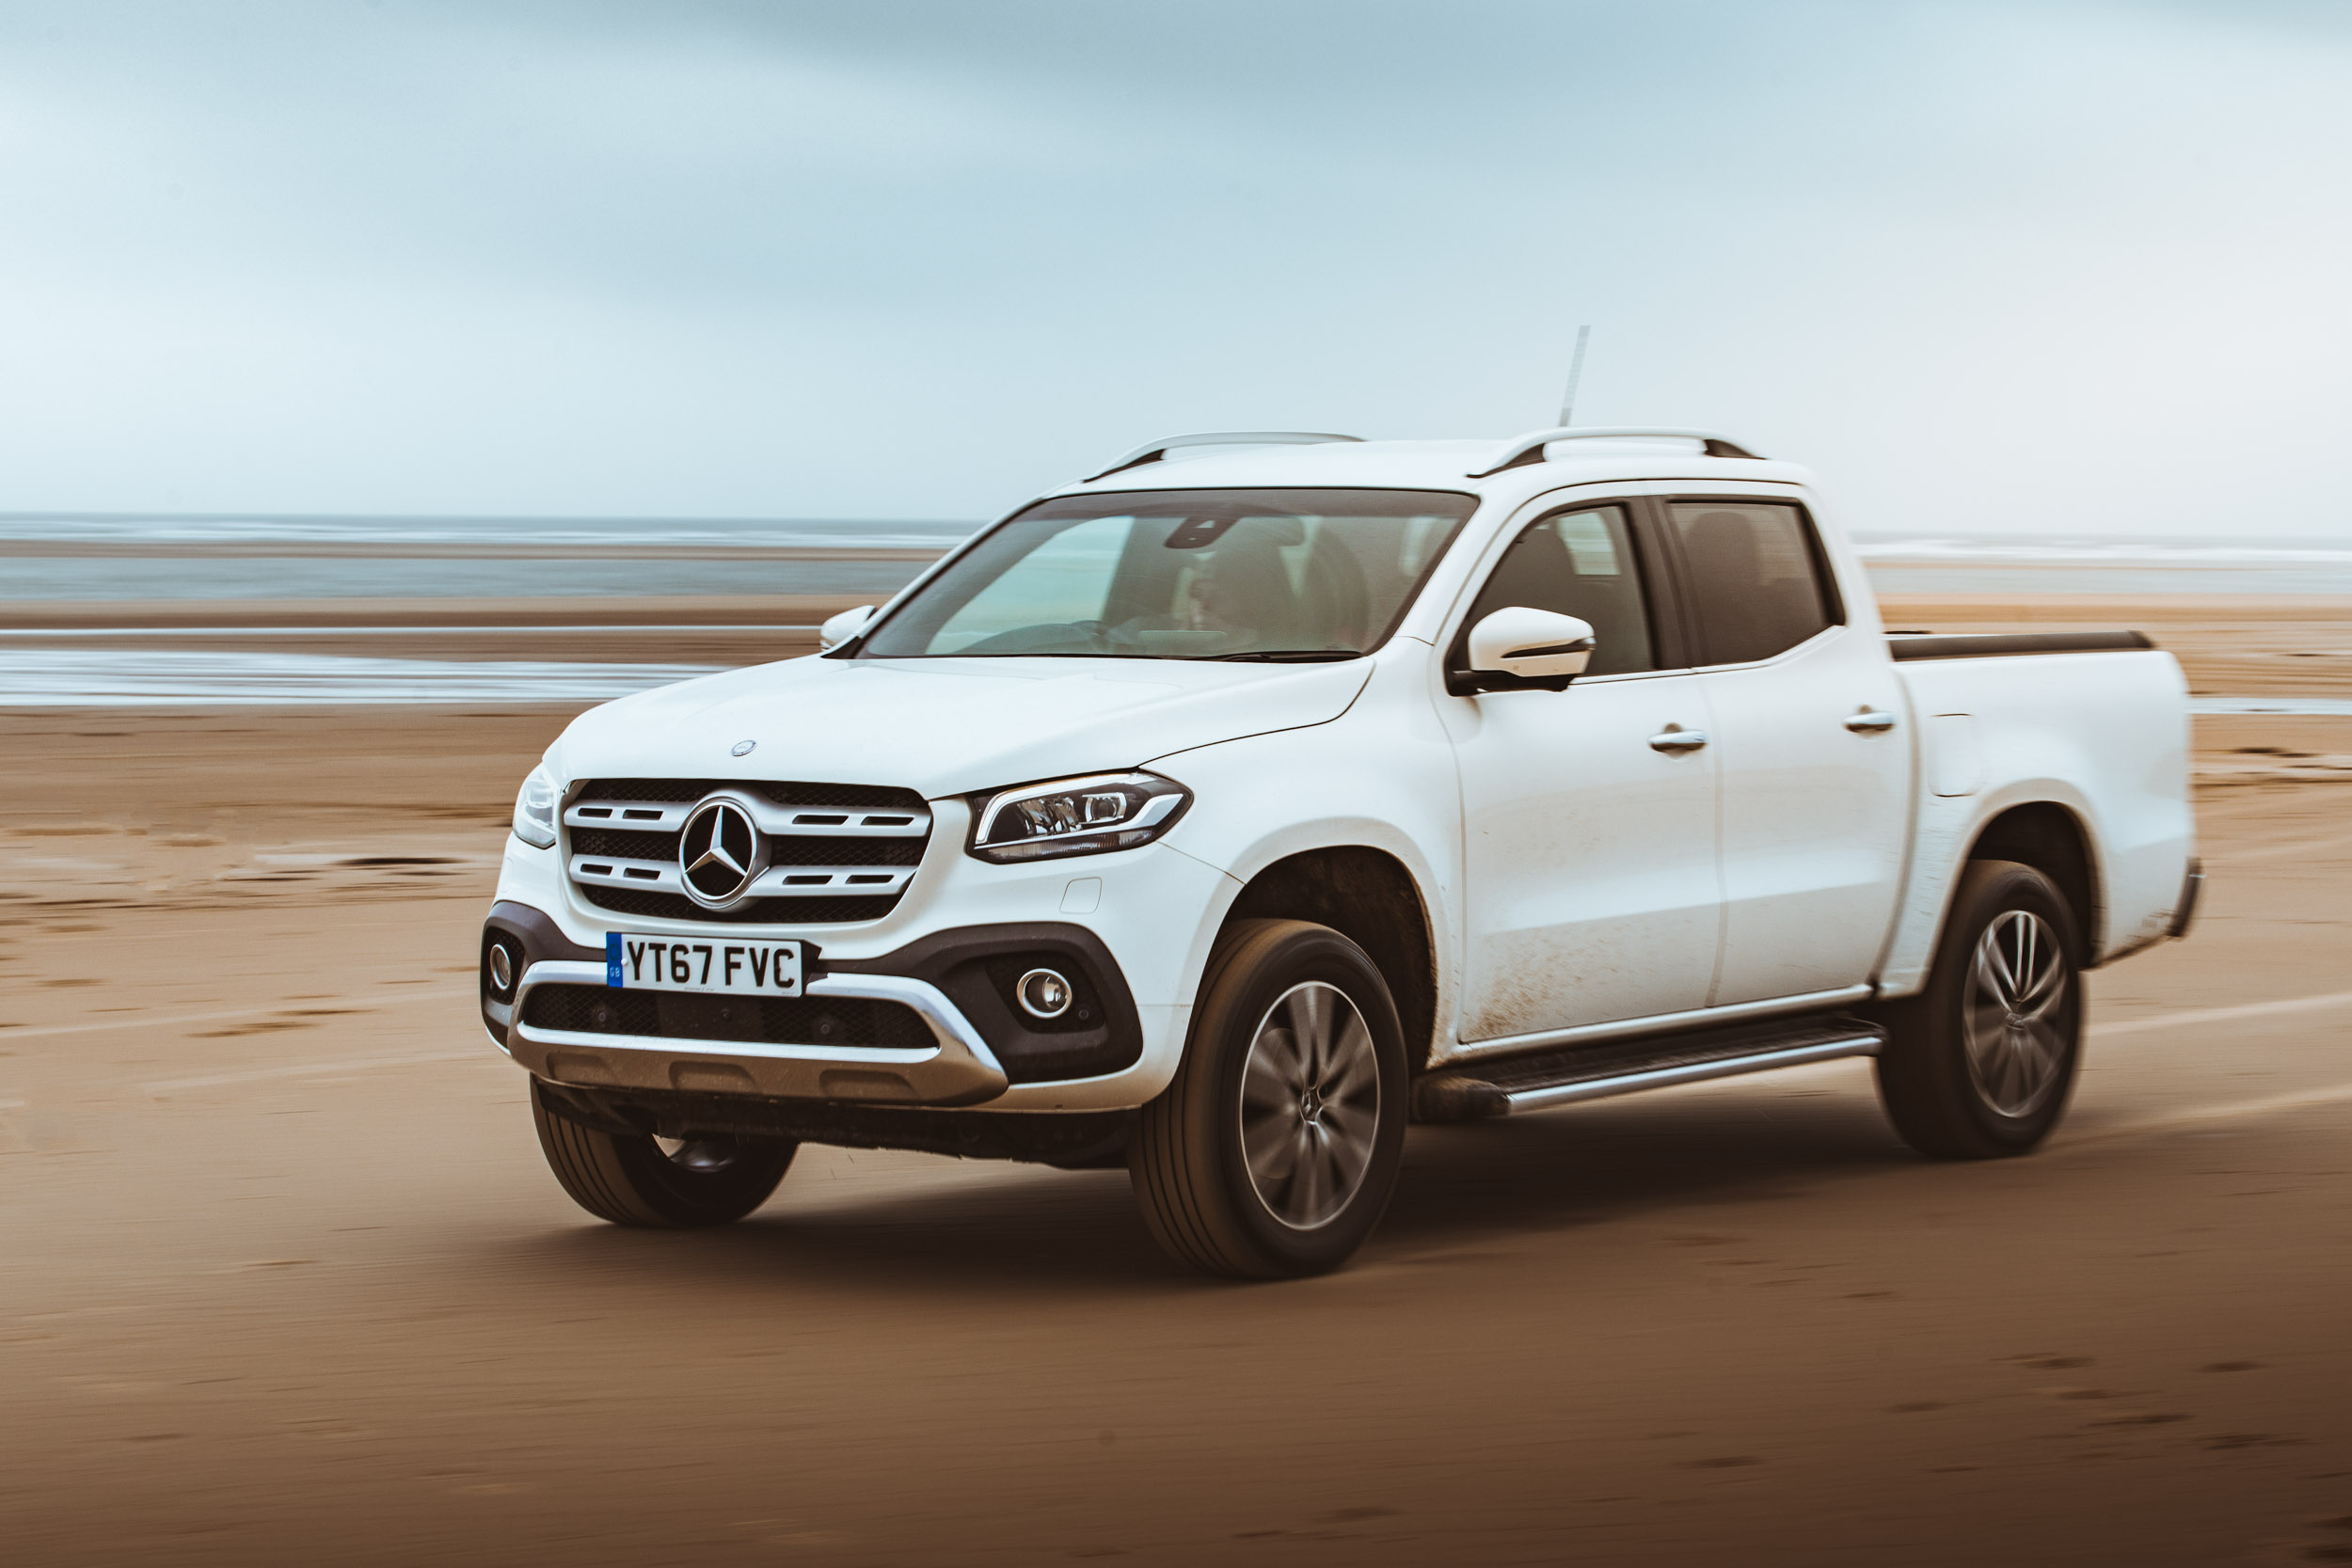 Mercedes_X-class_Dec2018_ByTomKahler_Lowres (26 of 35).jpg